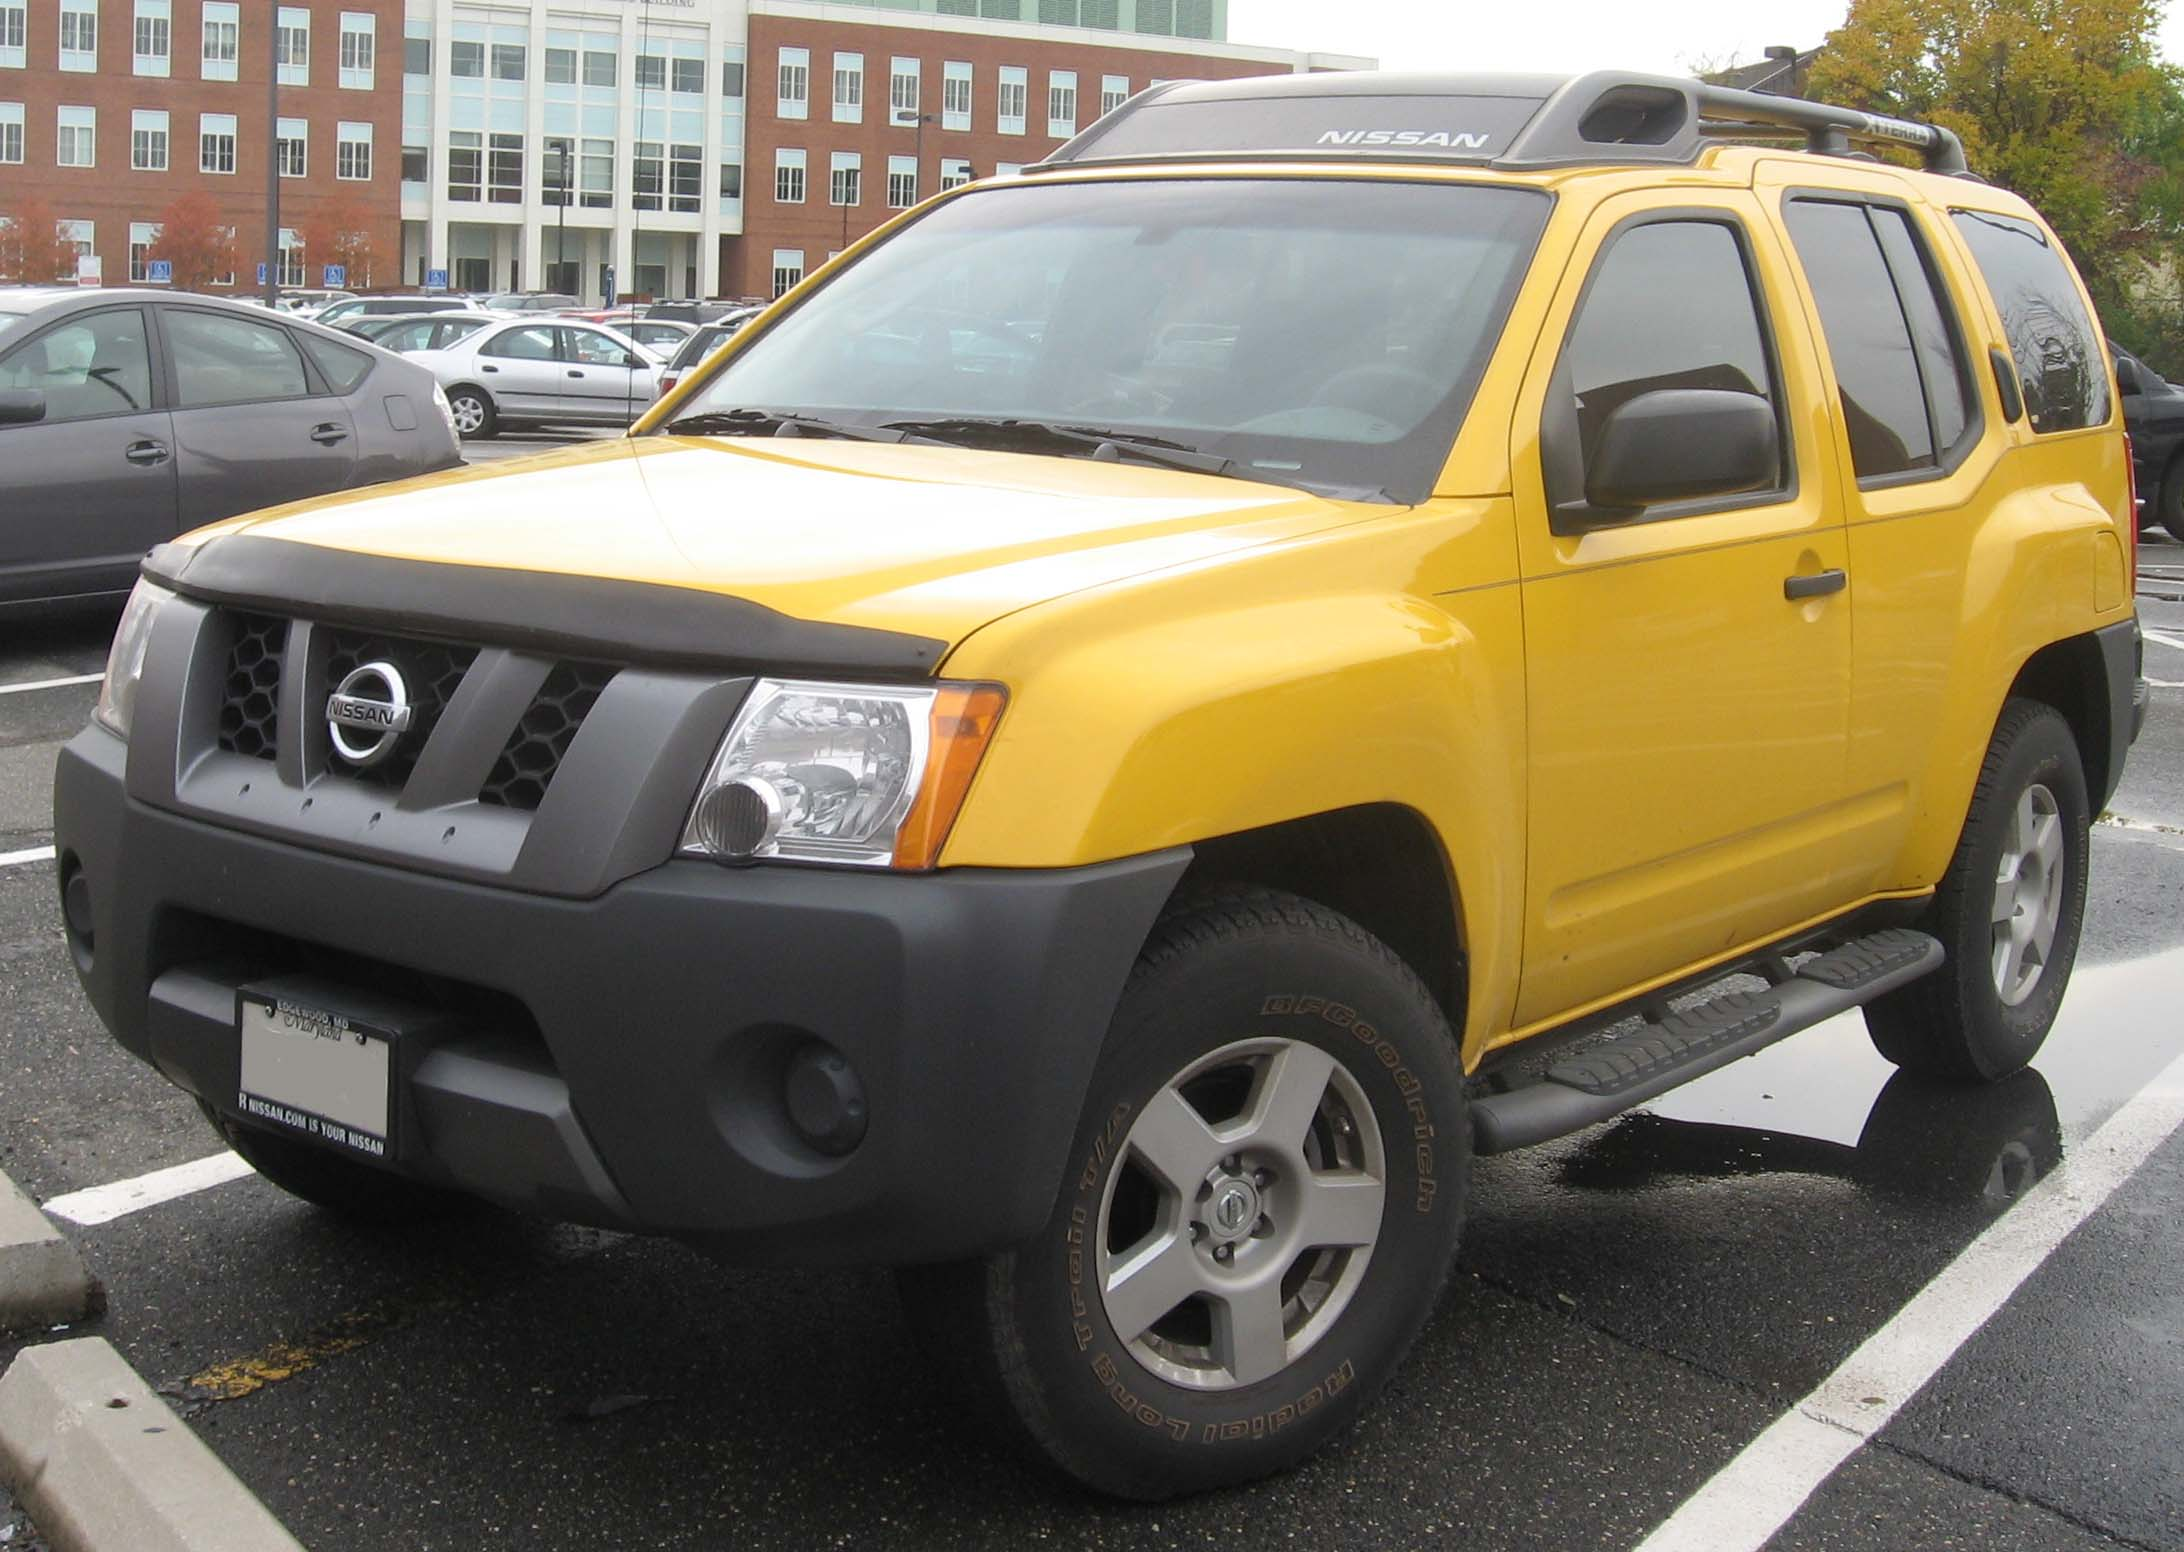 2007 nissan xterra information and photos zombiedrive 2007 nissan xterra 16 nissan xterra 16 vanachro Images